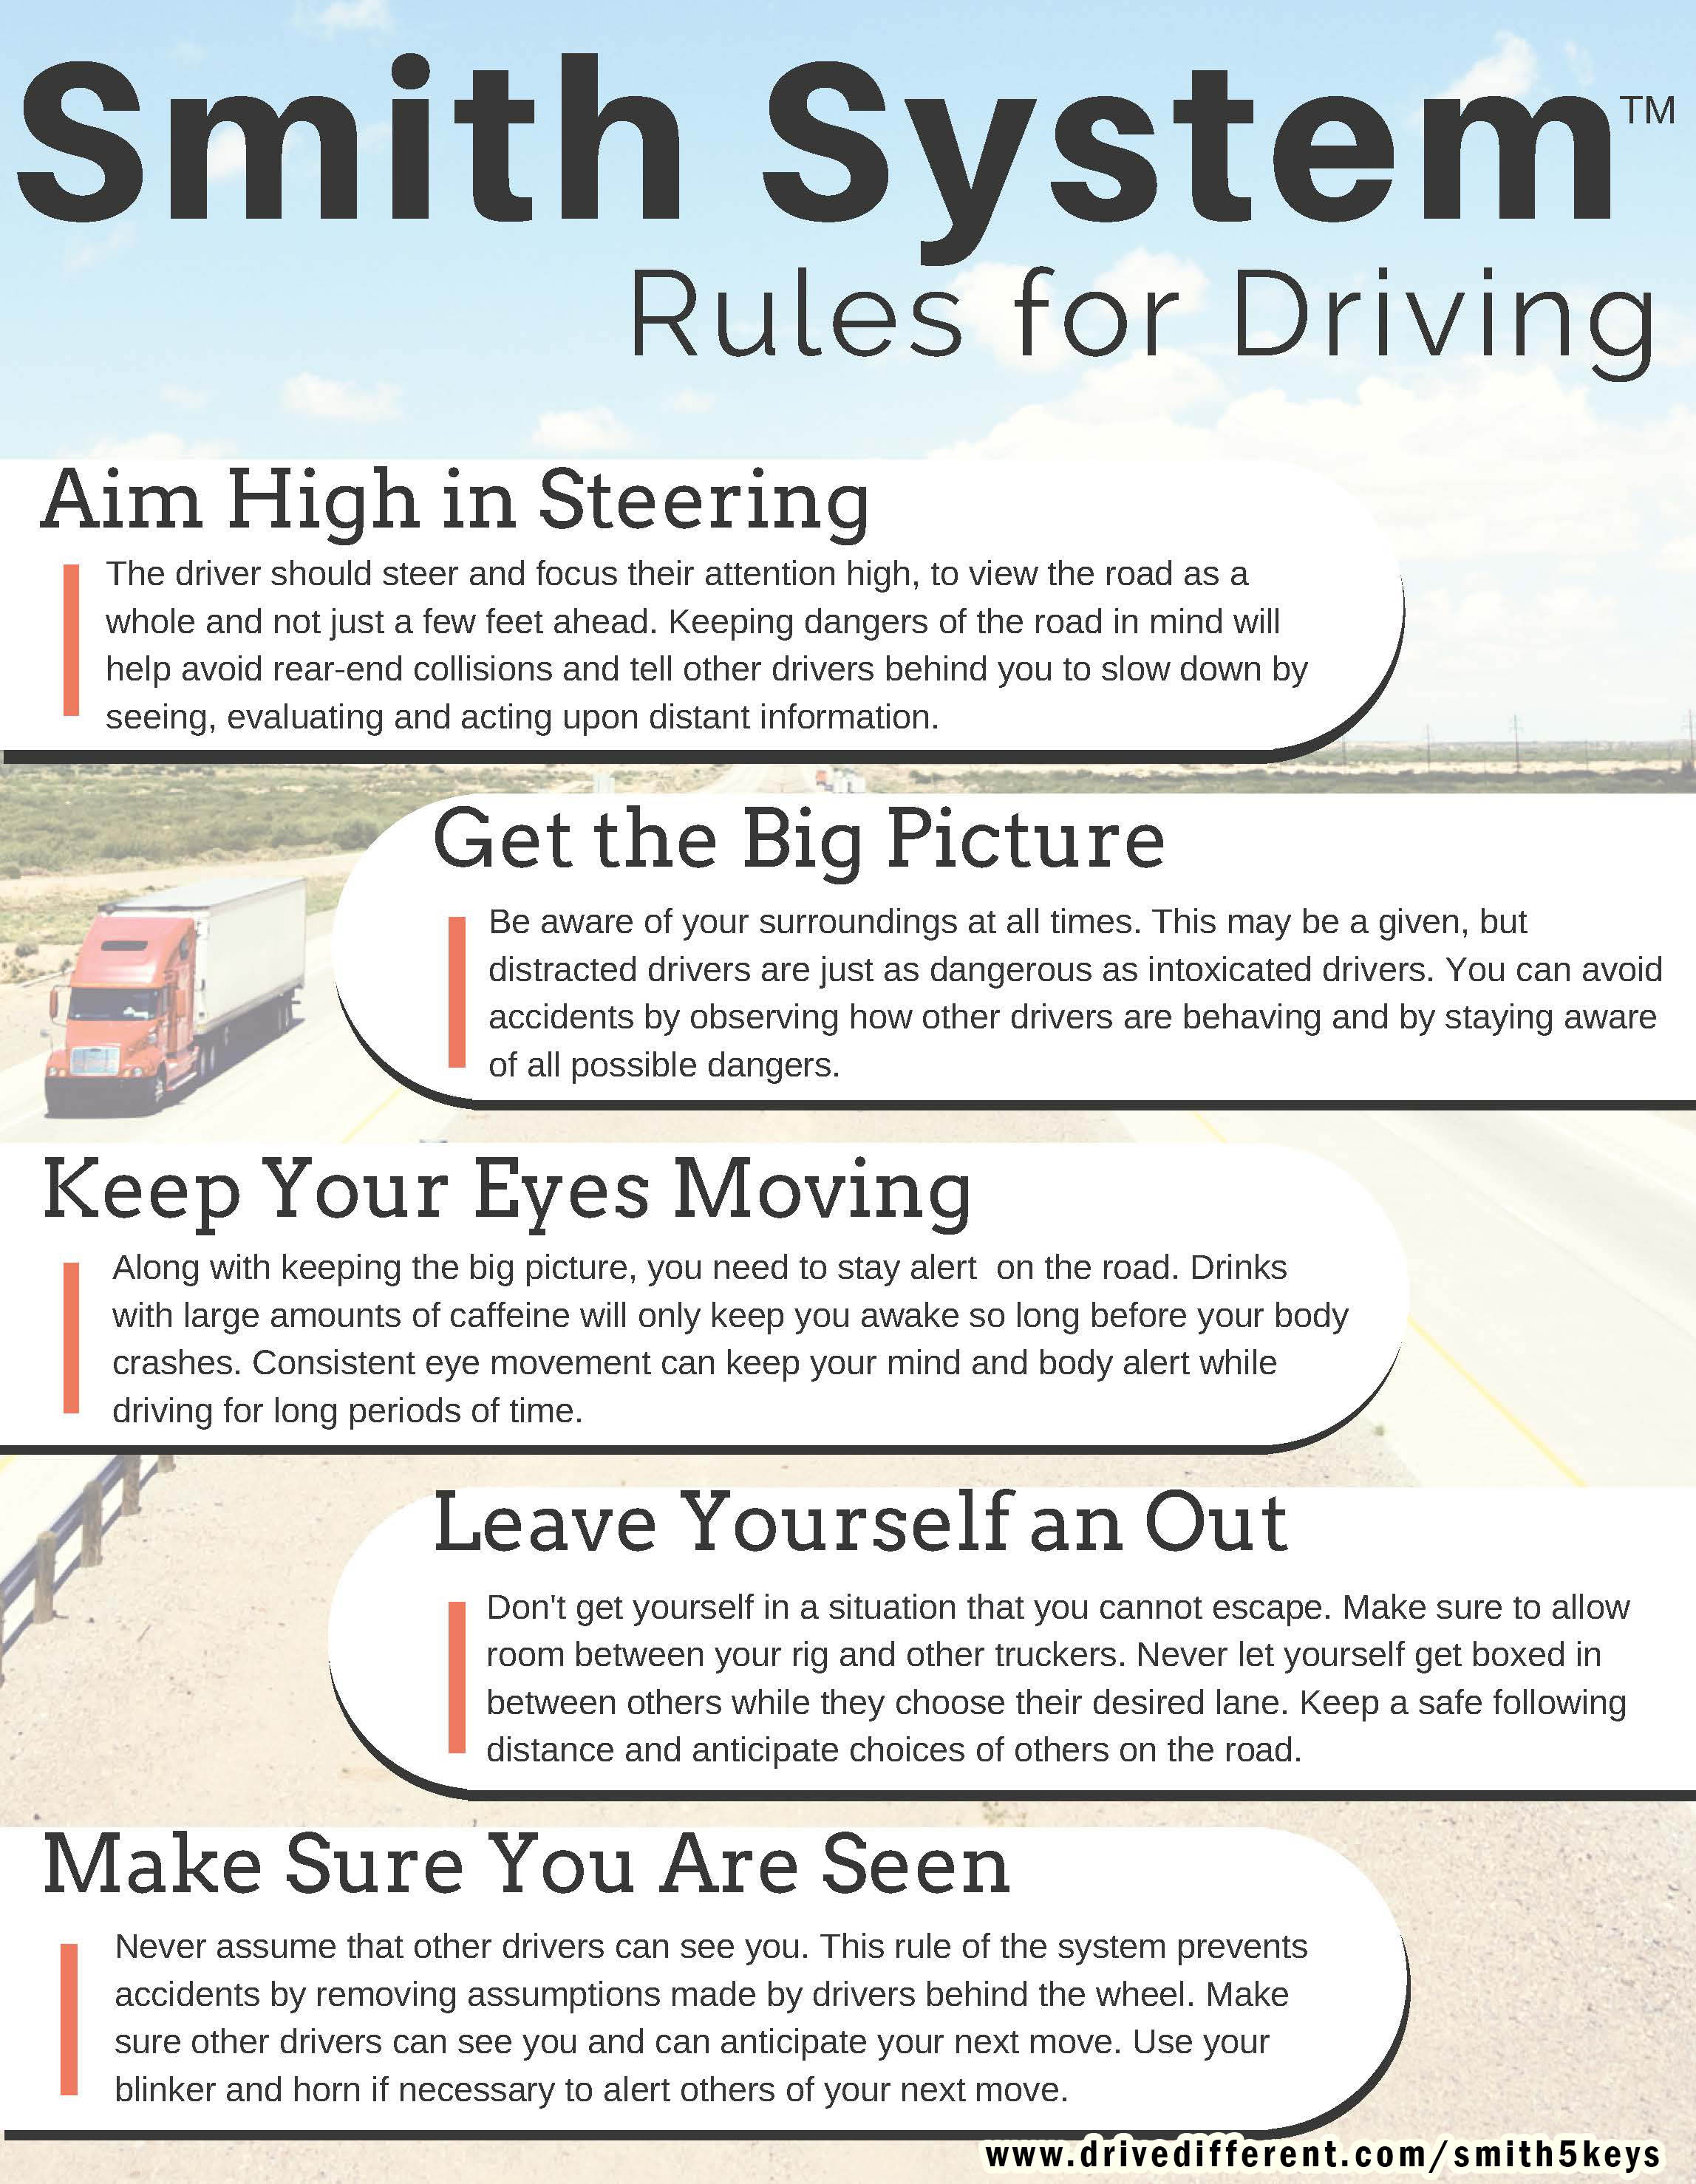 Gambar Rules of Driving Based on the Smith System-SPEC